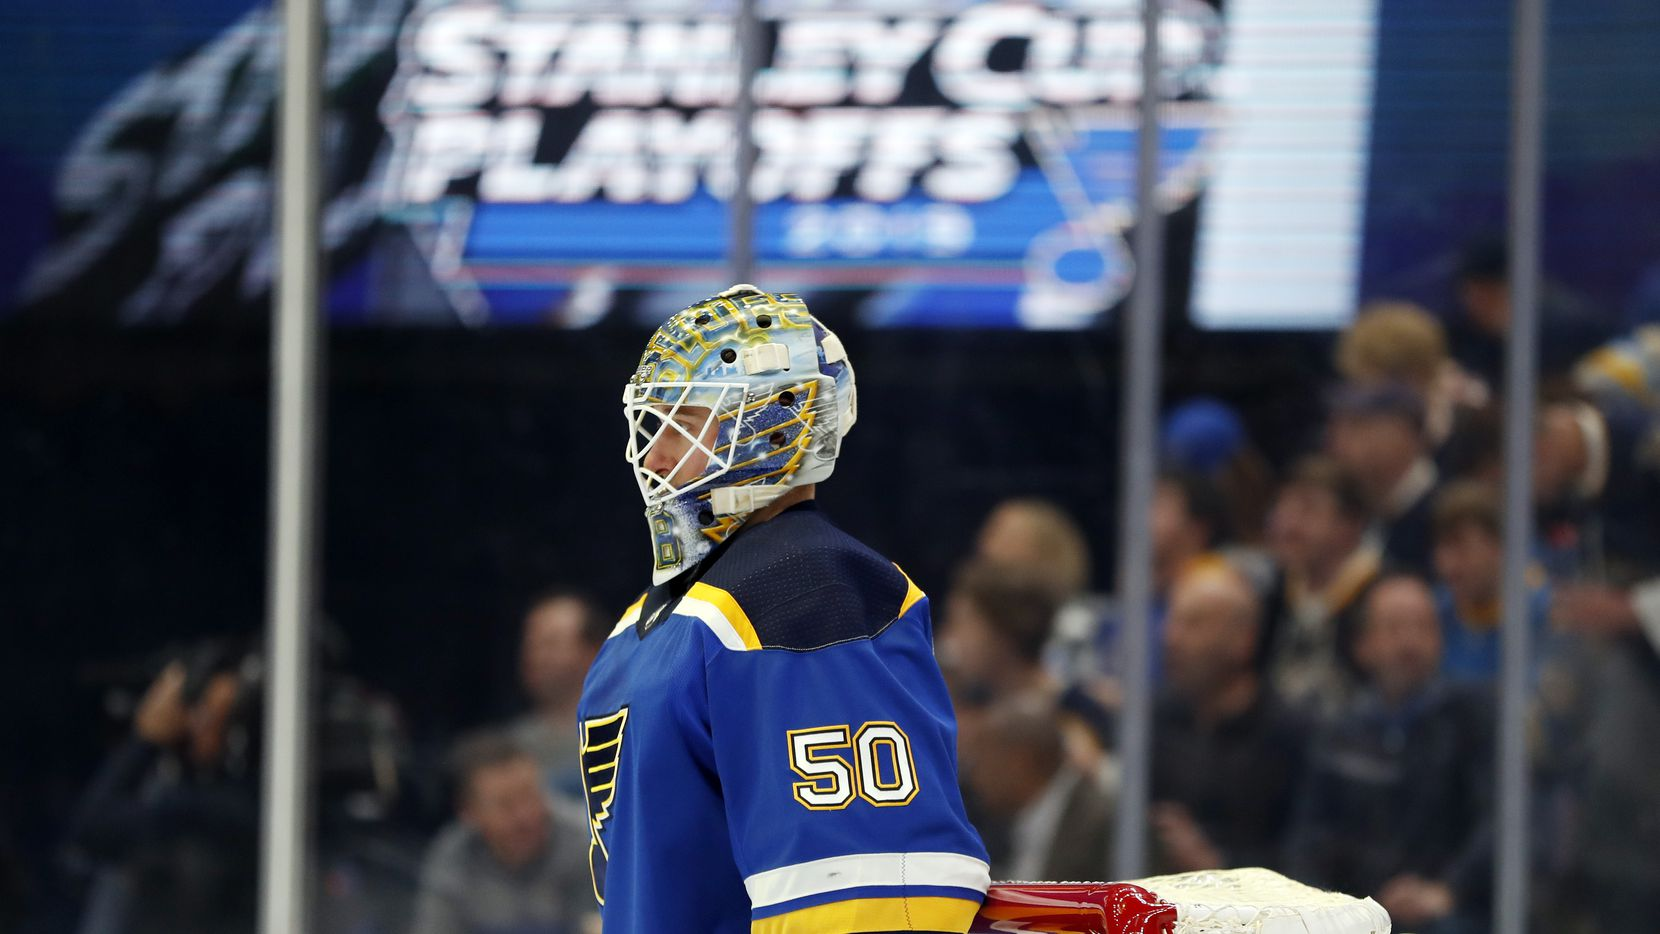 St. Louis Blues goaltender Jordan Binnington waits for the start of Game 4 of an NHL first-round hockey playoff series against the Winnipeg Jets Tuesday, April 16, 2019, in St. Louis. (AP Photo/Jeff Roberson)